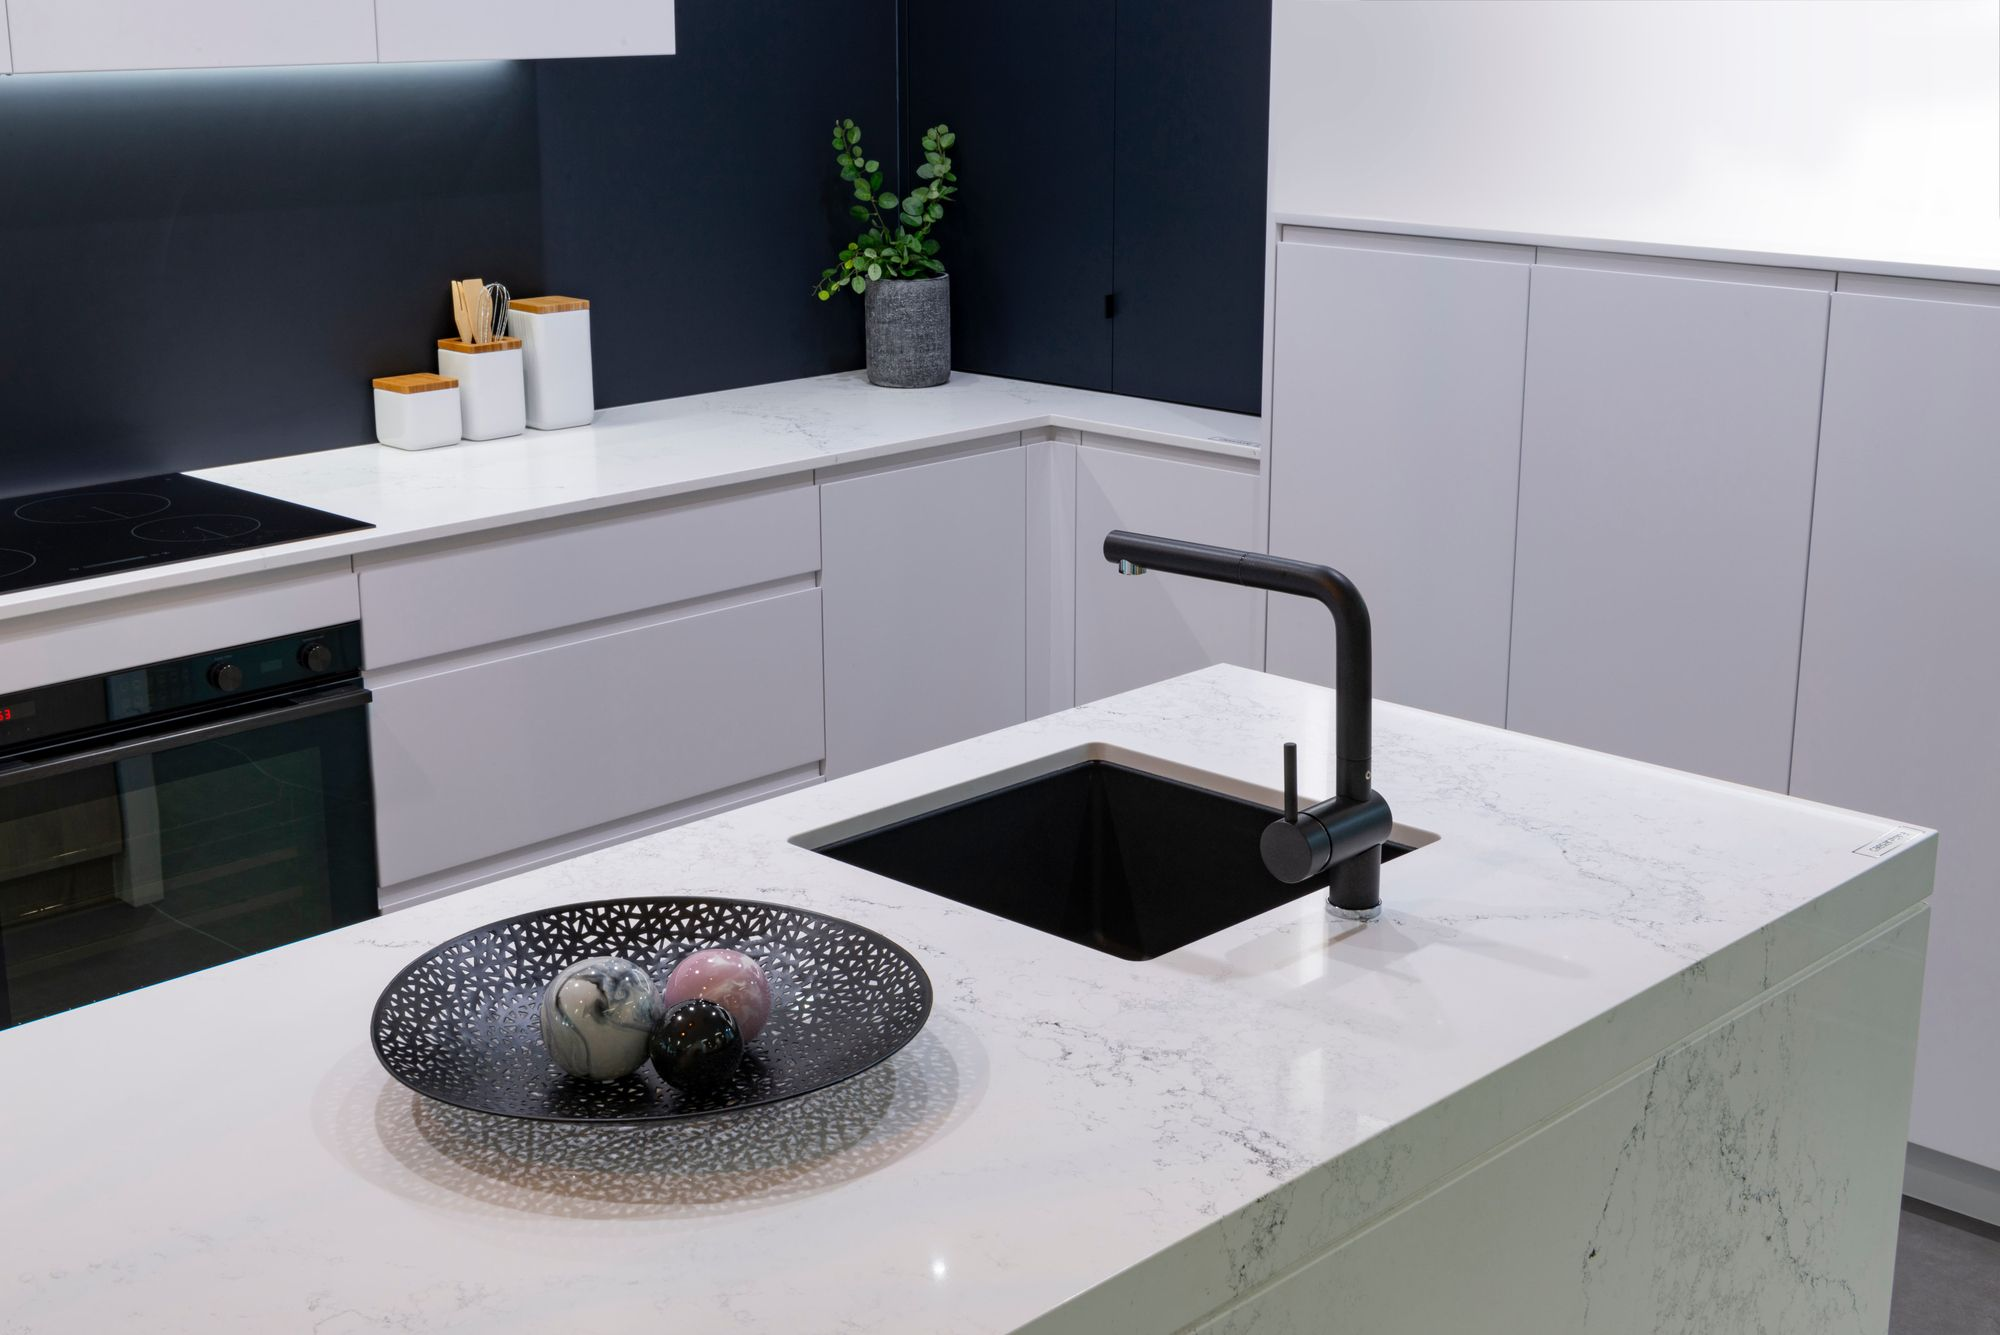 The New Caesarstone Empira White Kitchens For Living Create A